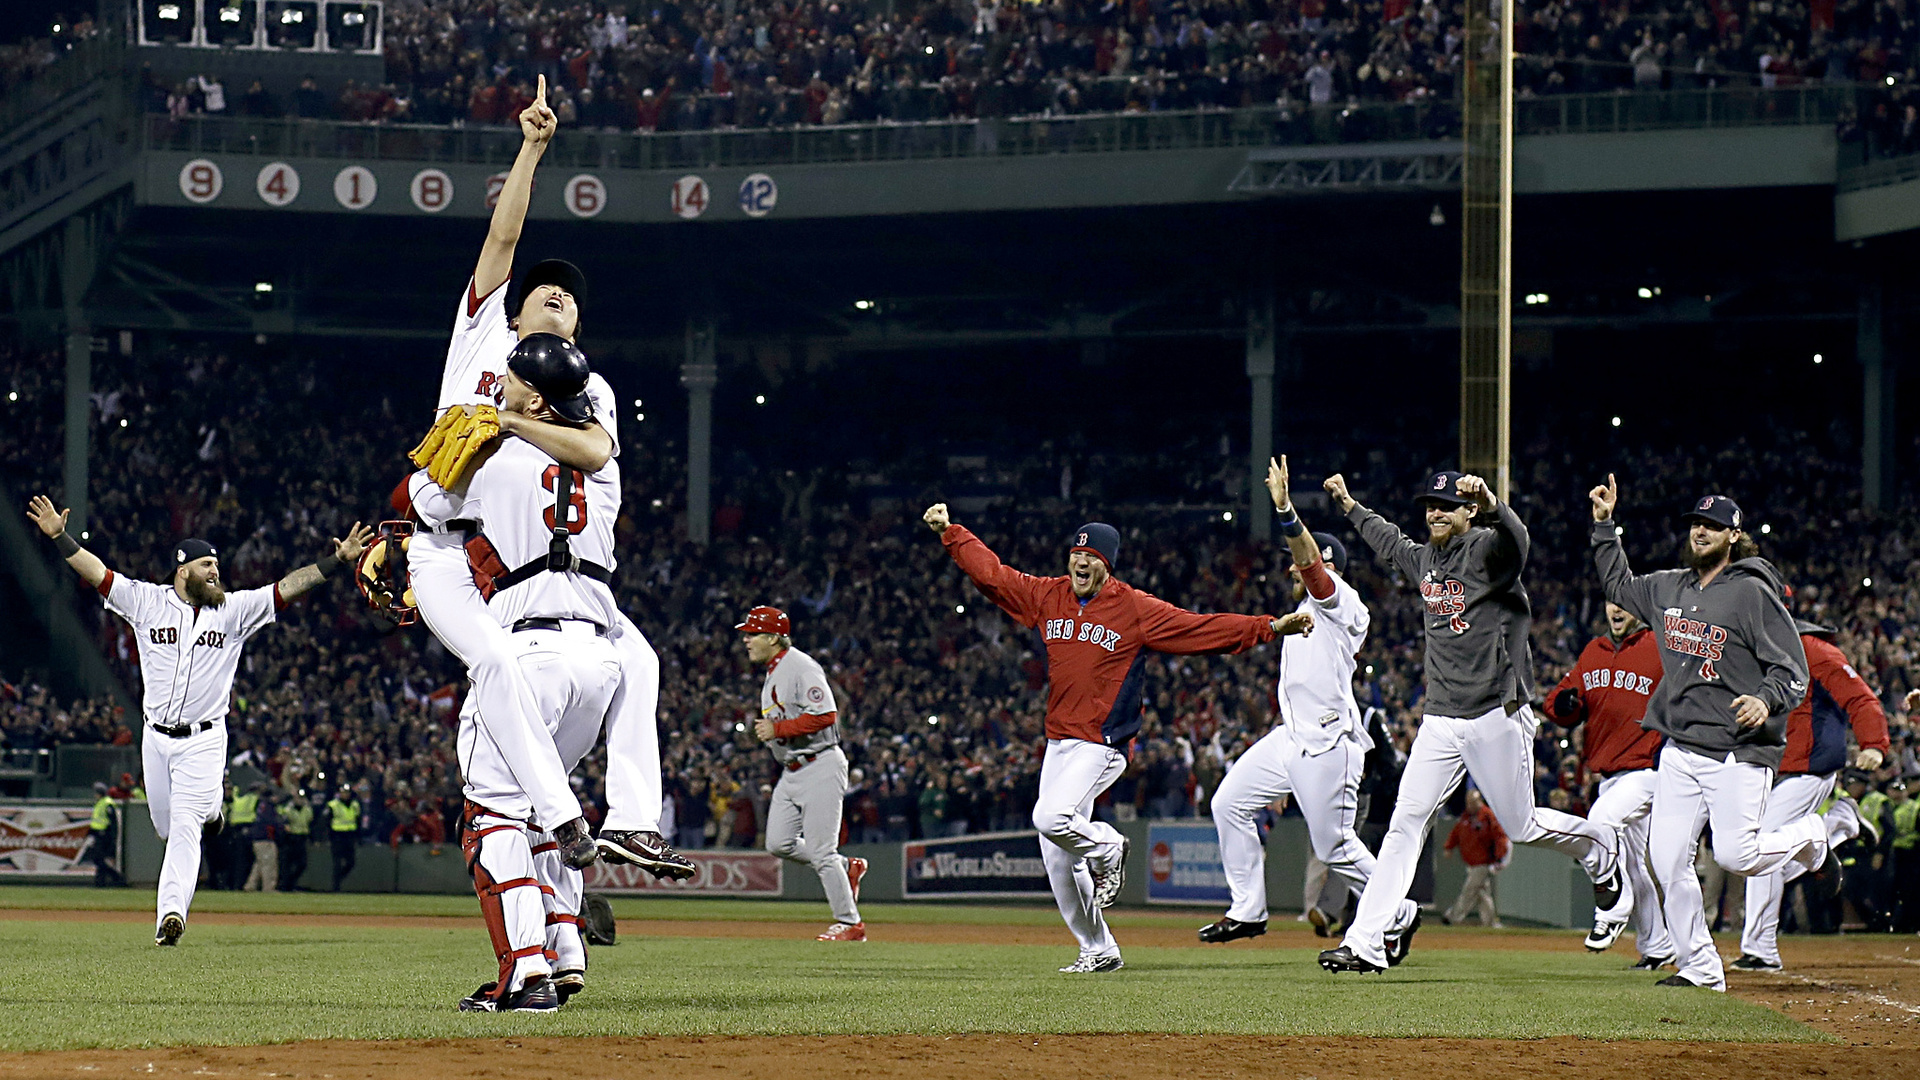 Red Sox Wallpaper HD Images Download wallpaperwiki 1920x1080